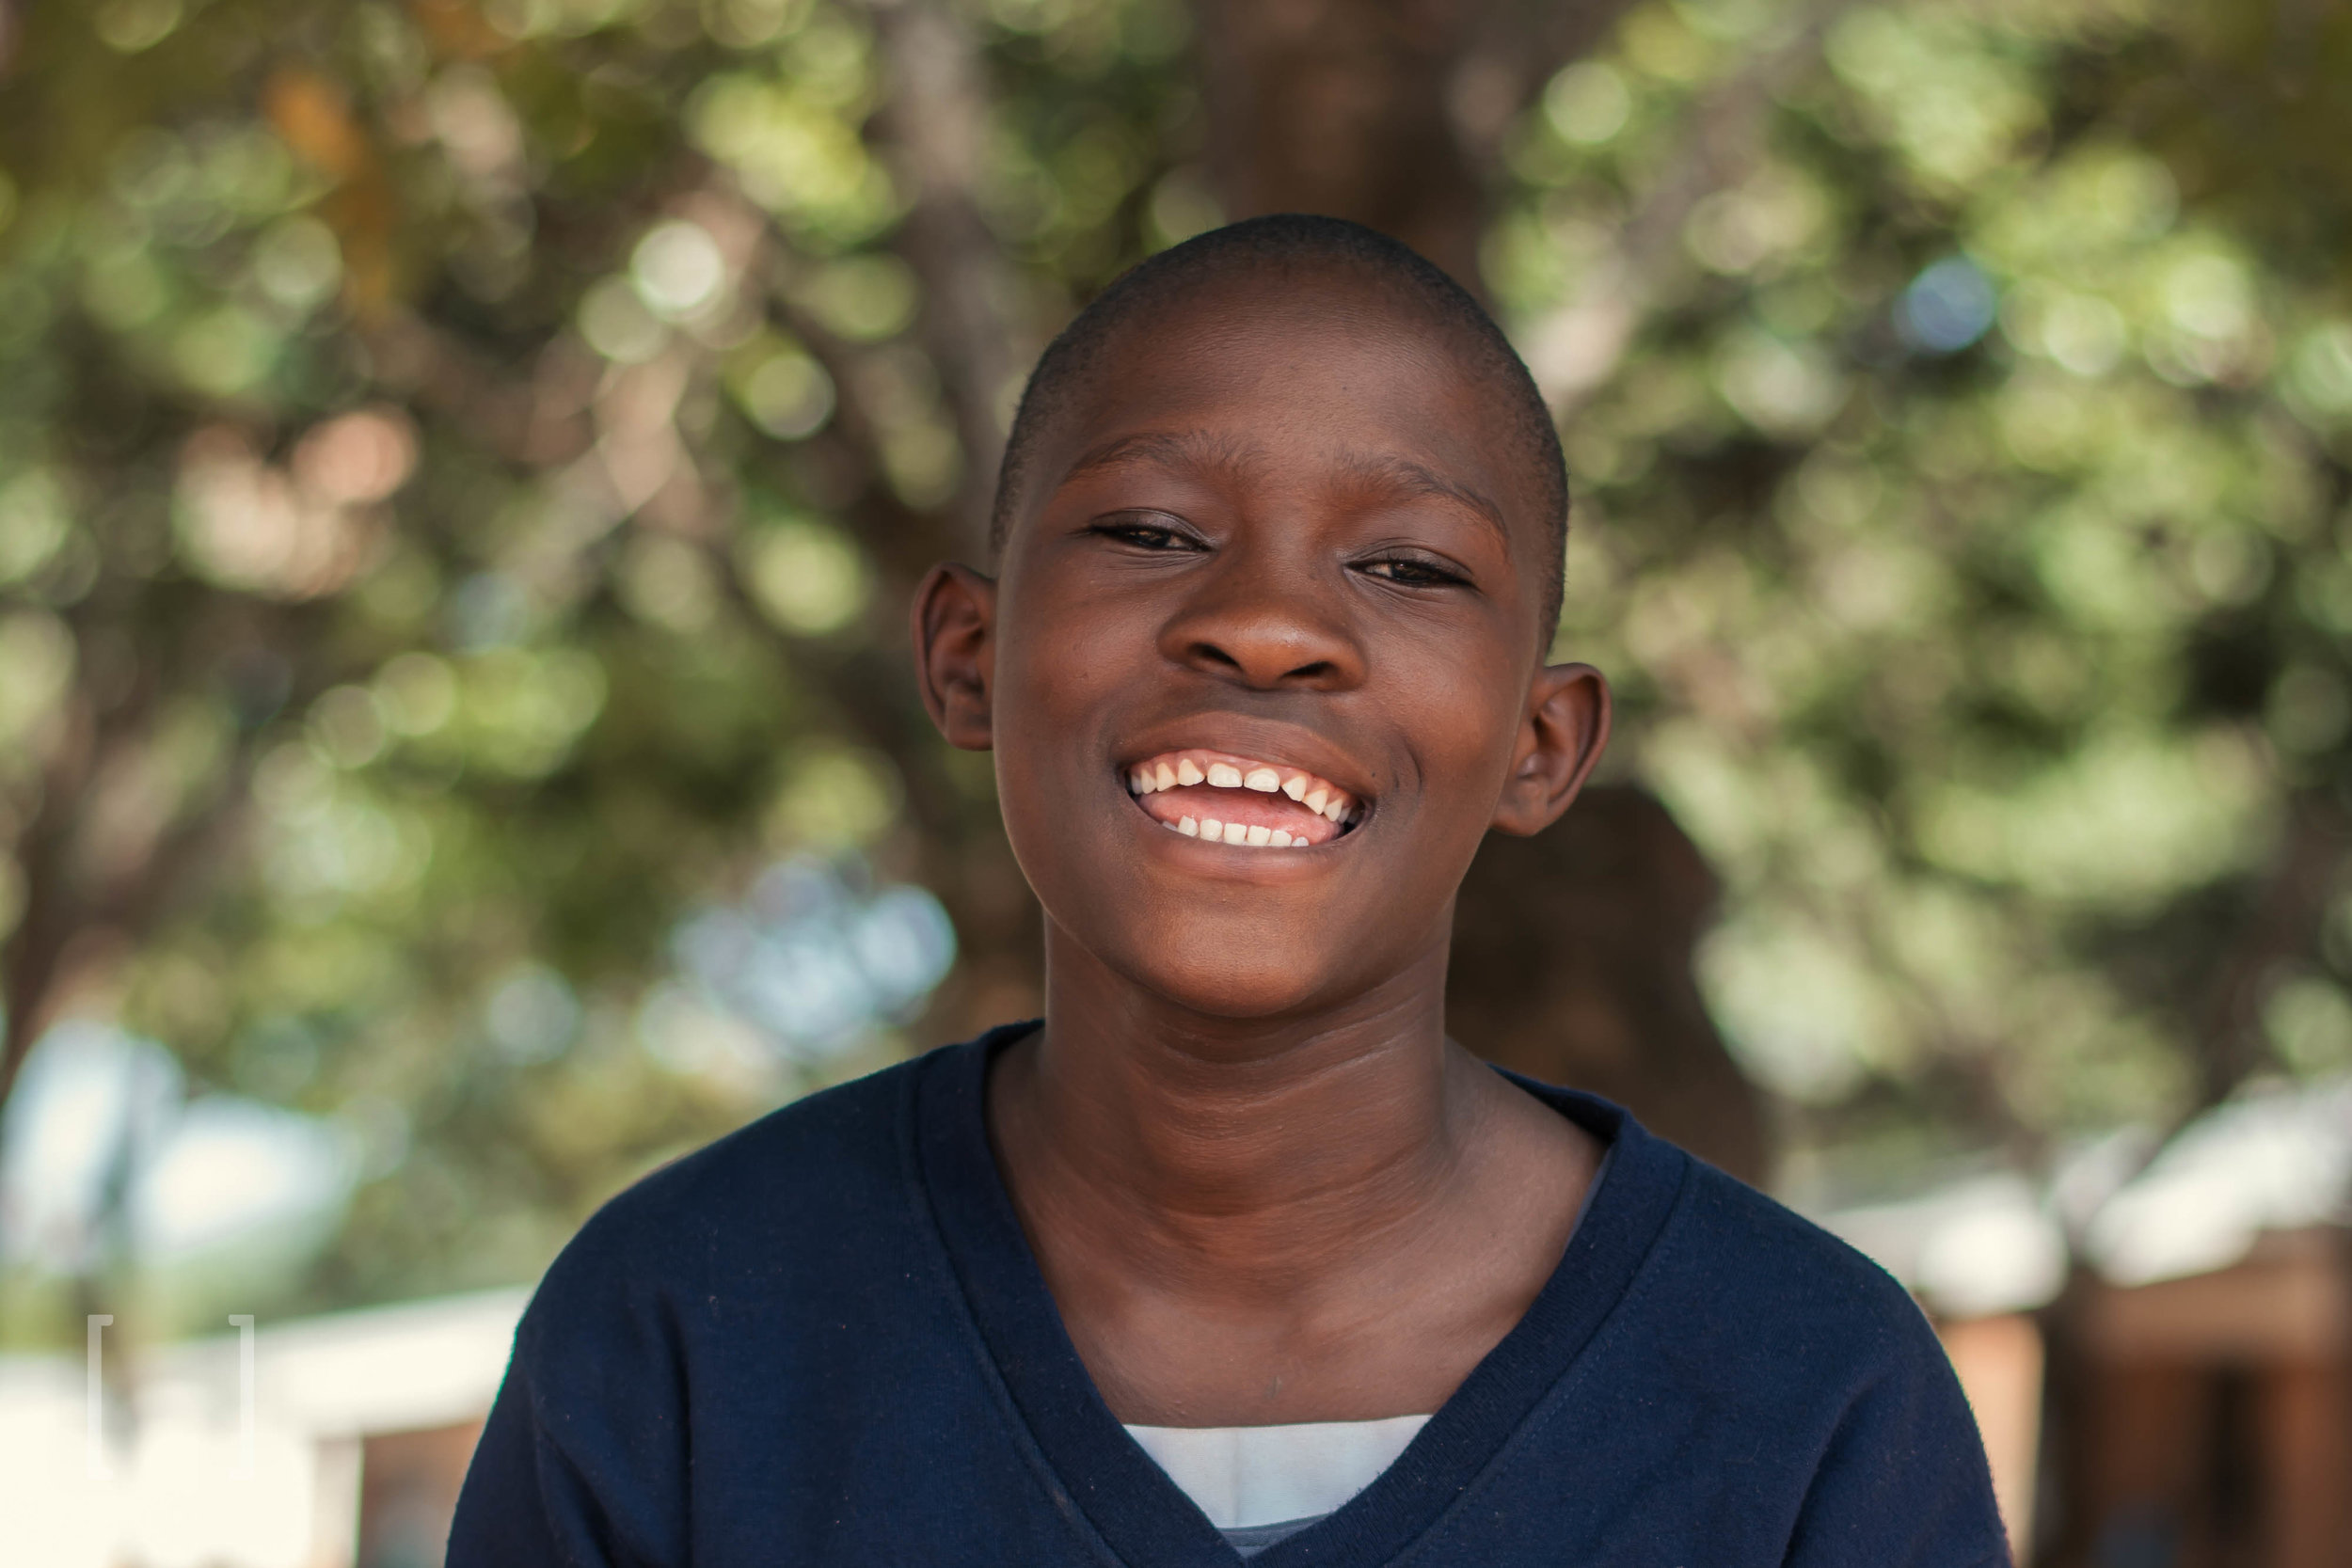 Belita - Belita's mother died during child birth. She has four siblings who are all at Home of Hope. Belita would like to become a doctor one day. Support her dream!